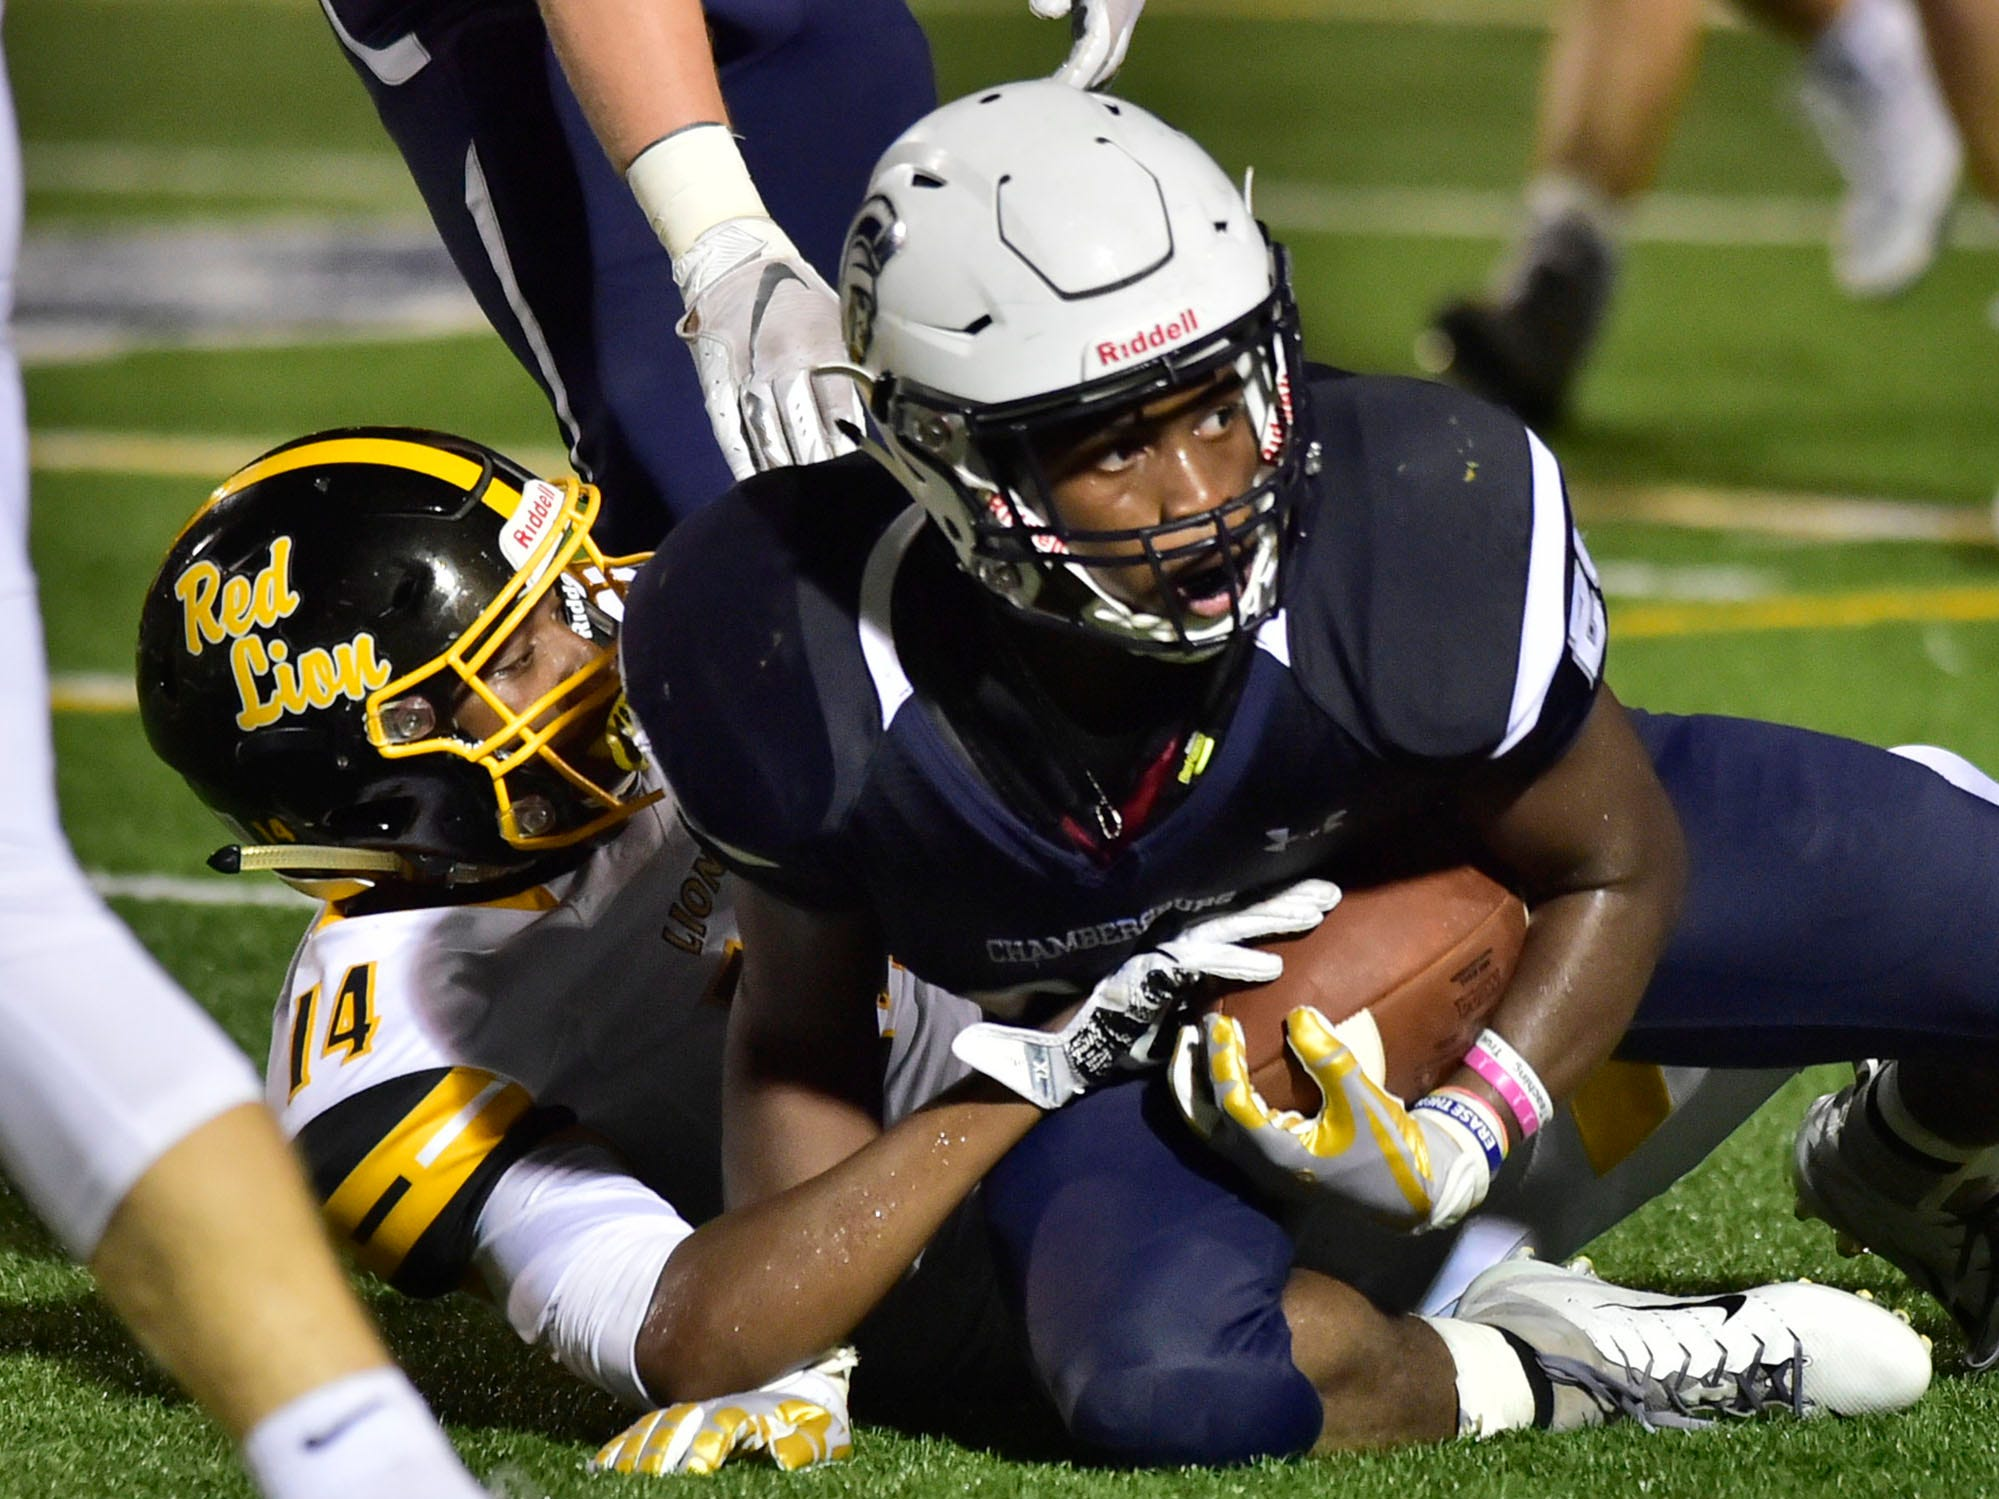 Chambersburg's Keyshawn Jones is brought down by Red Lion's Kobe Martin after a first down. Chambersburg defeated Red Lion 28-19 in PIAA football on Friday, Sept. 7, 2018.